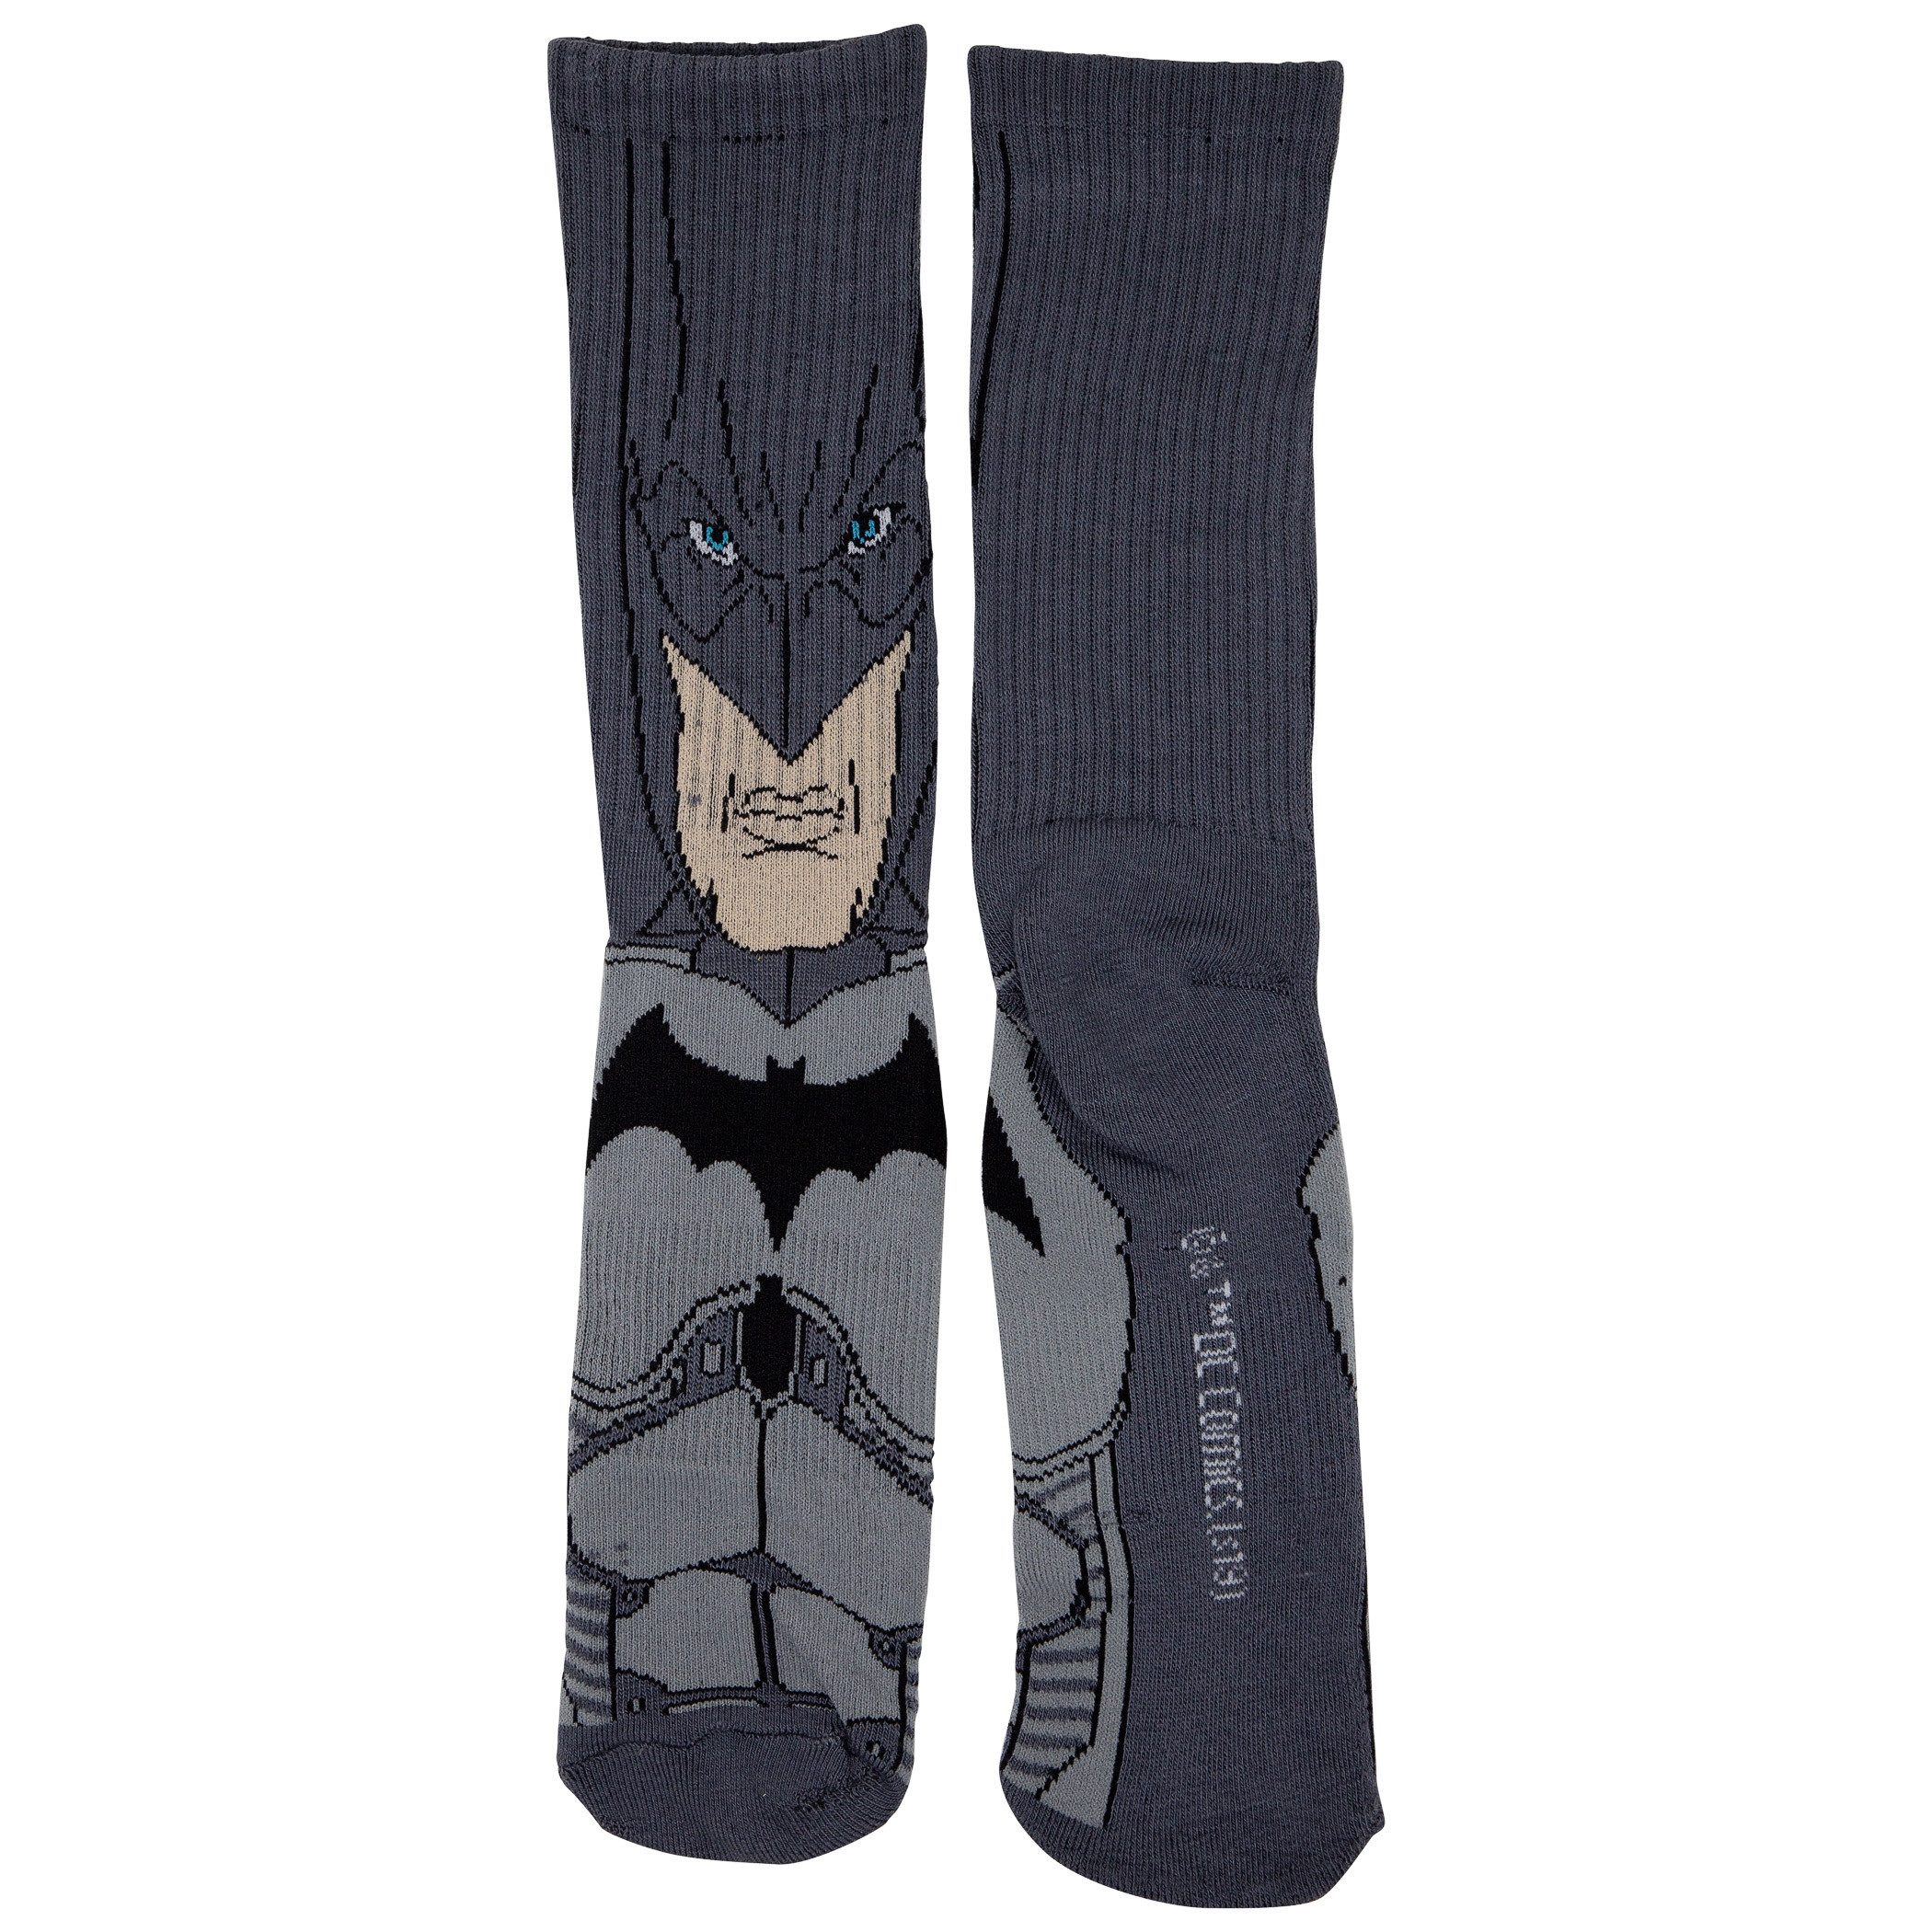 Batman and Joker Character Crew Socks 2-Pair Pack